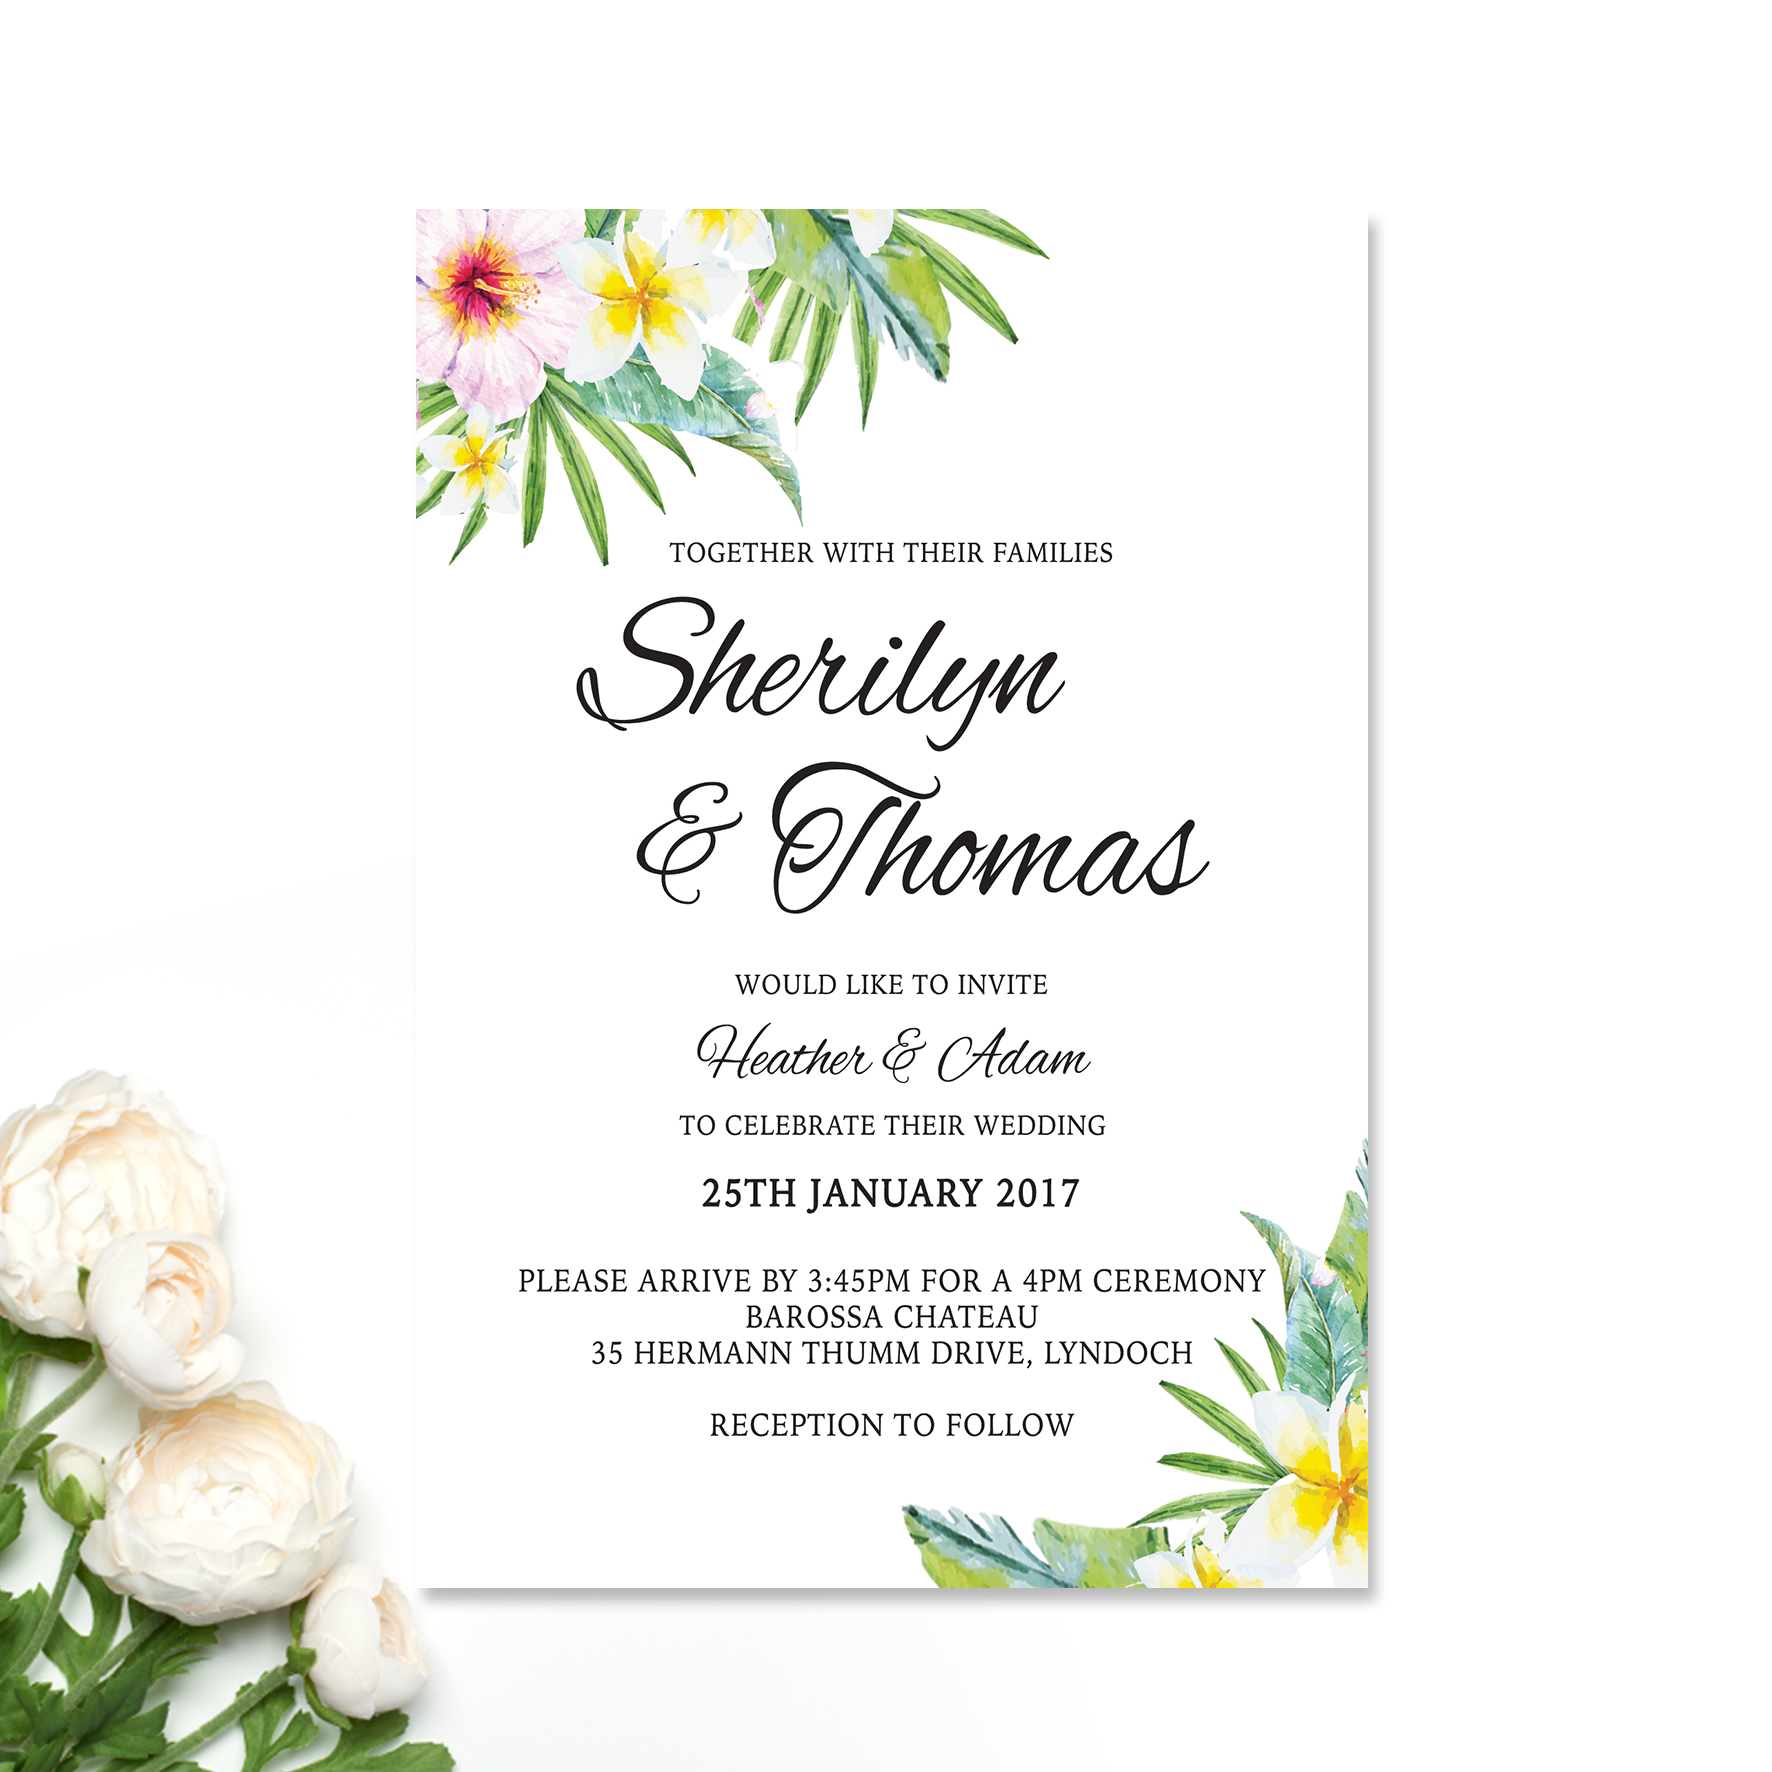 Sherilyn + Thomas Wedding Invitation